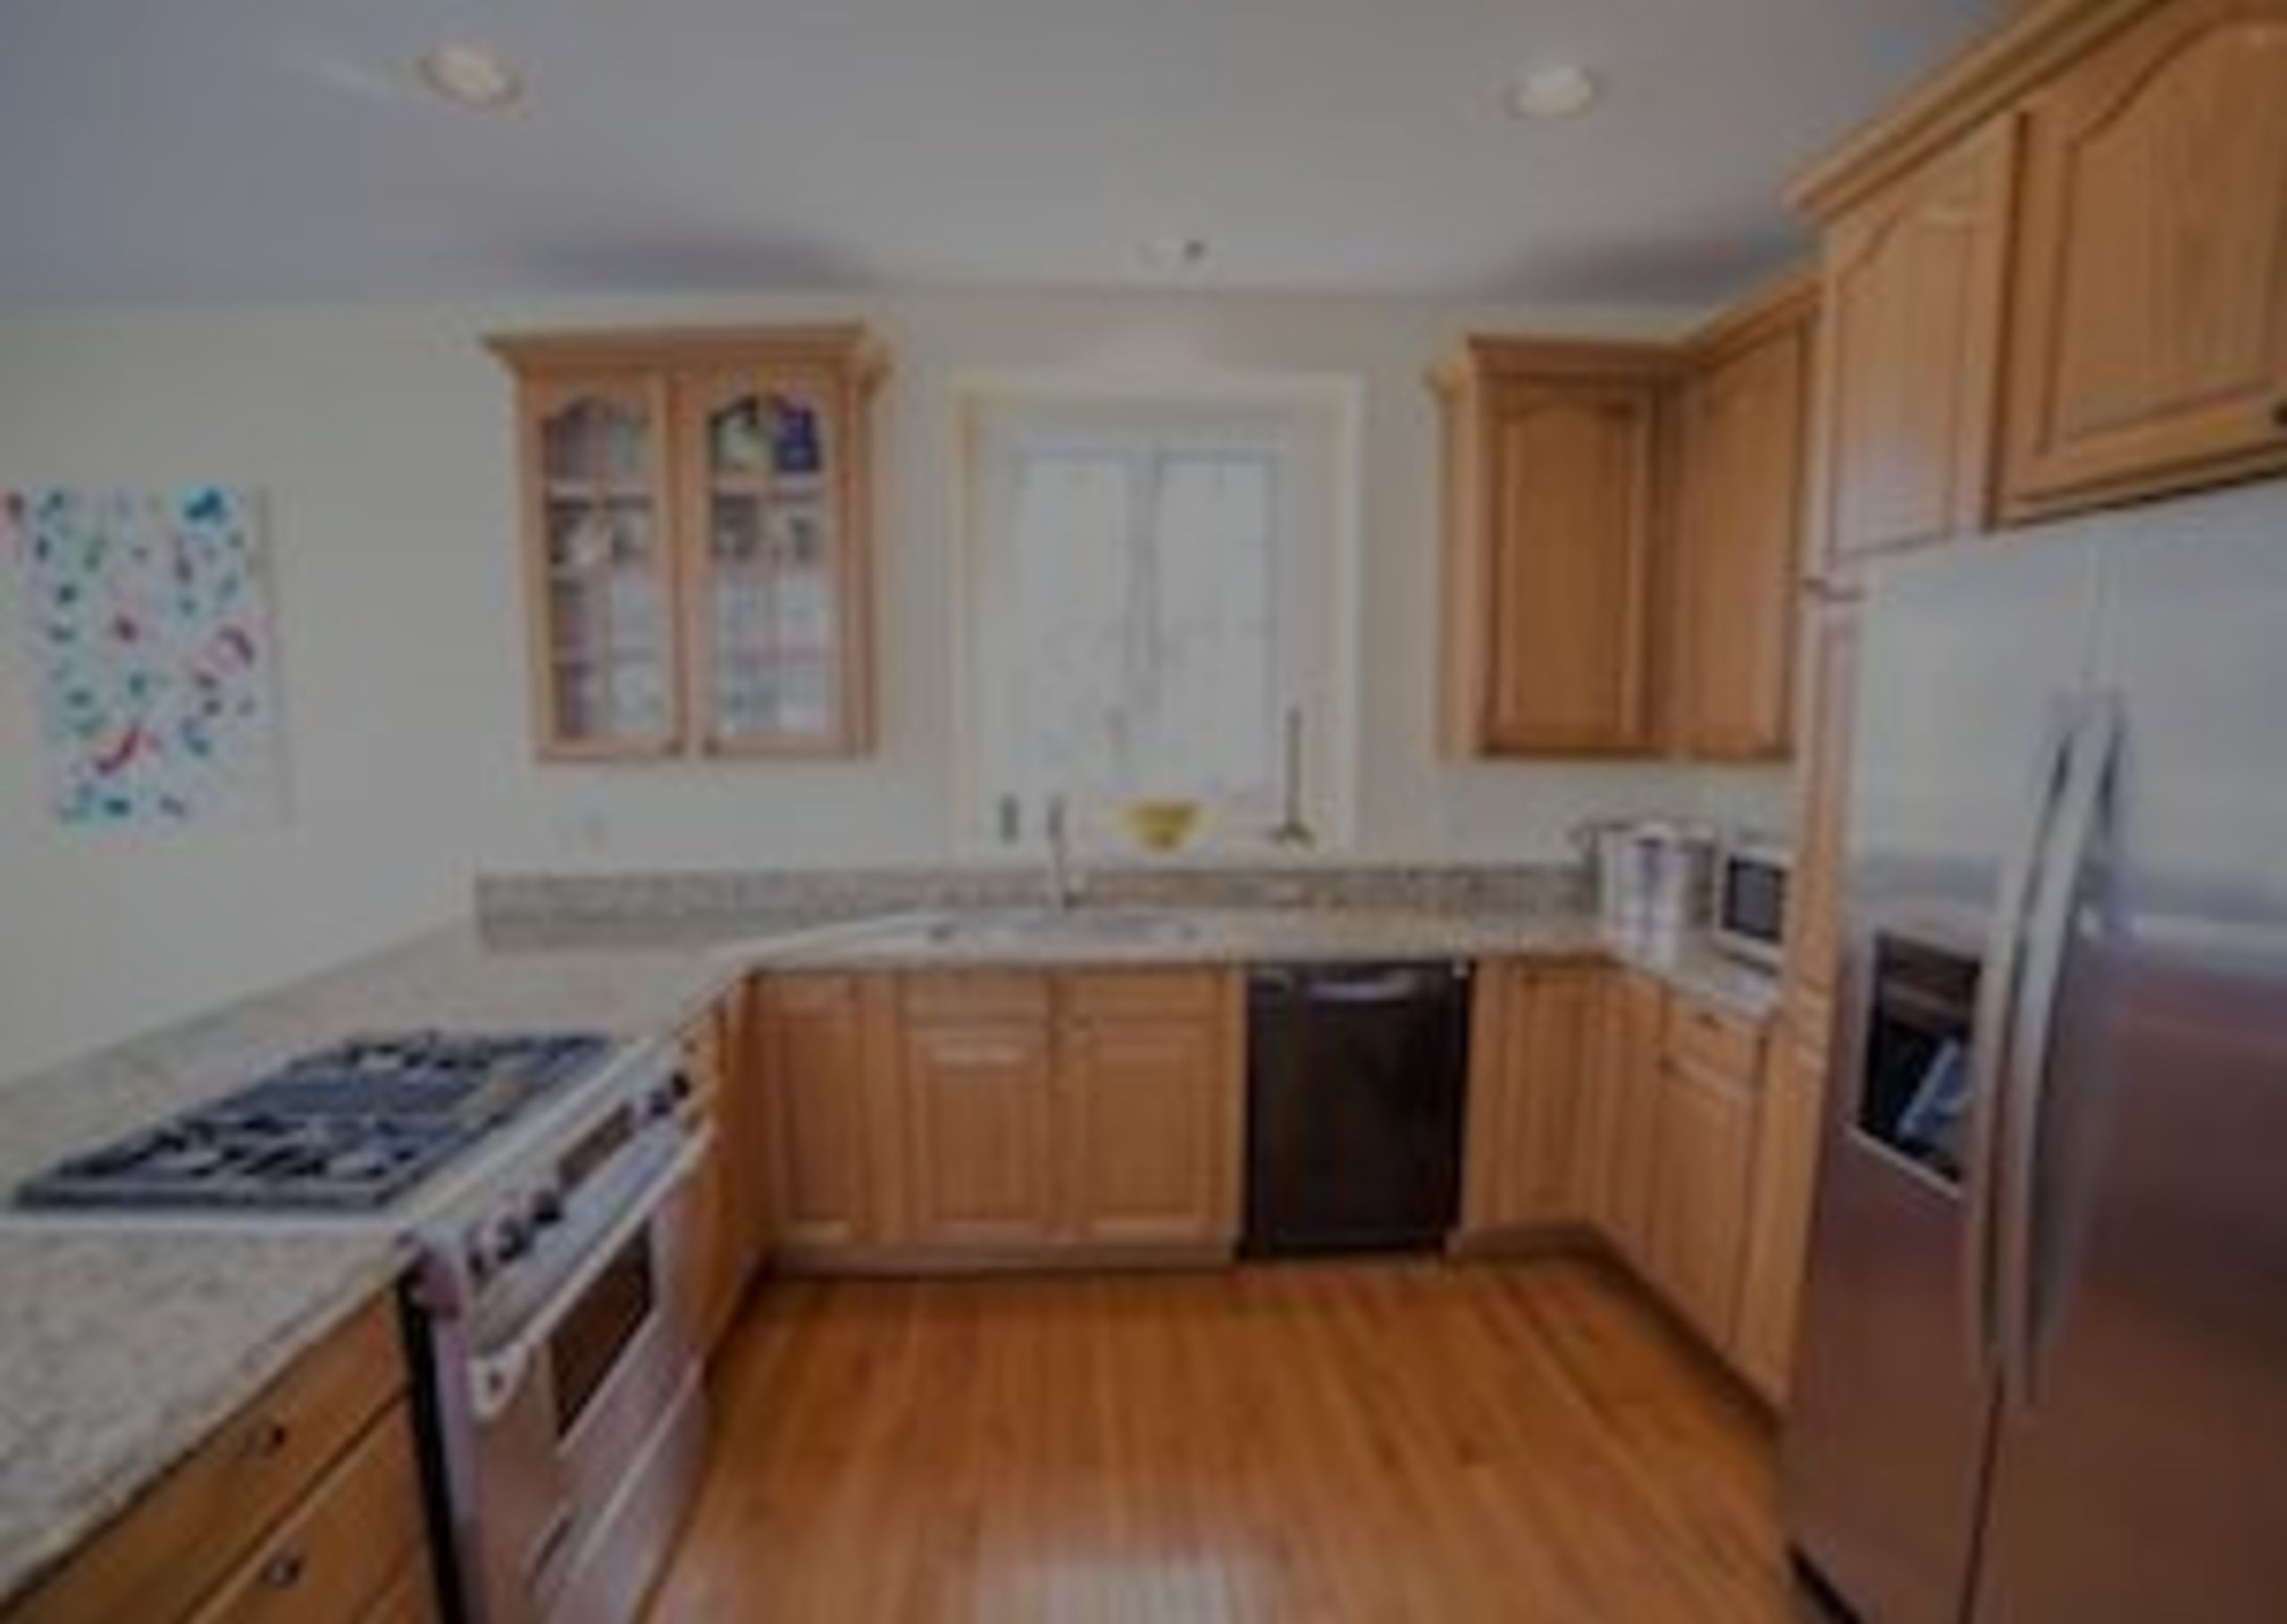 Open House | 1/28 in Middleburg